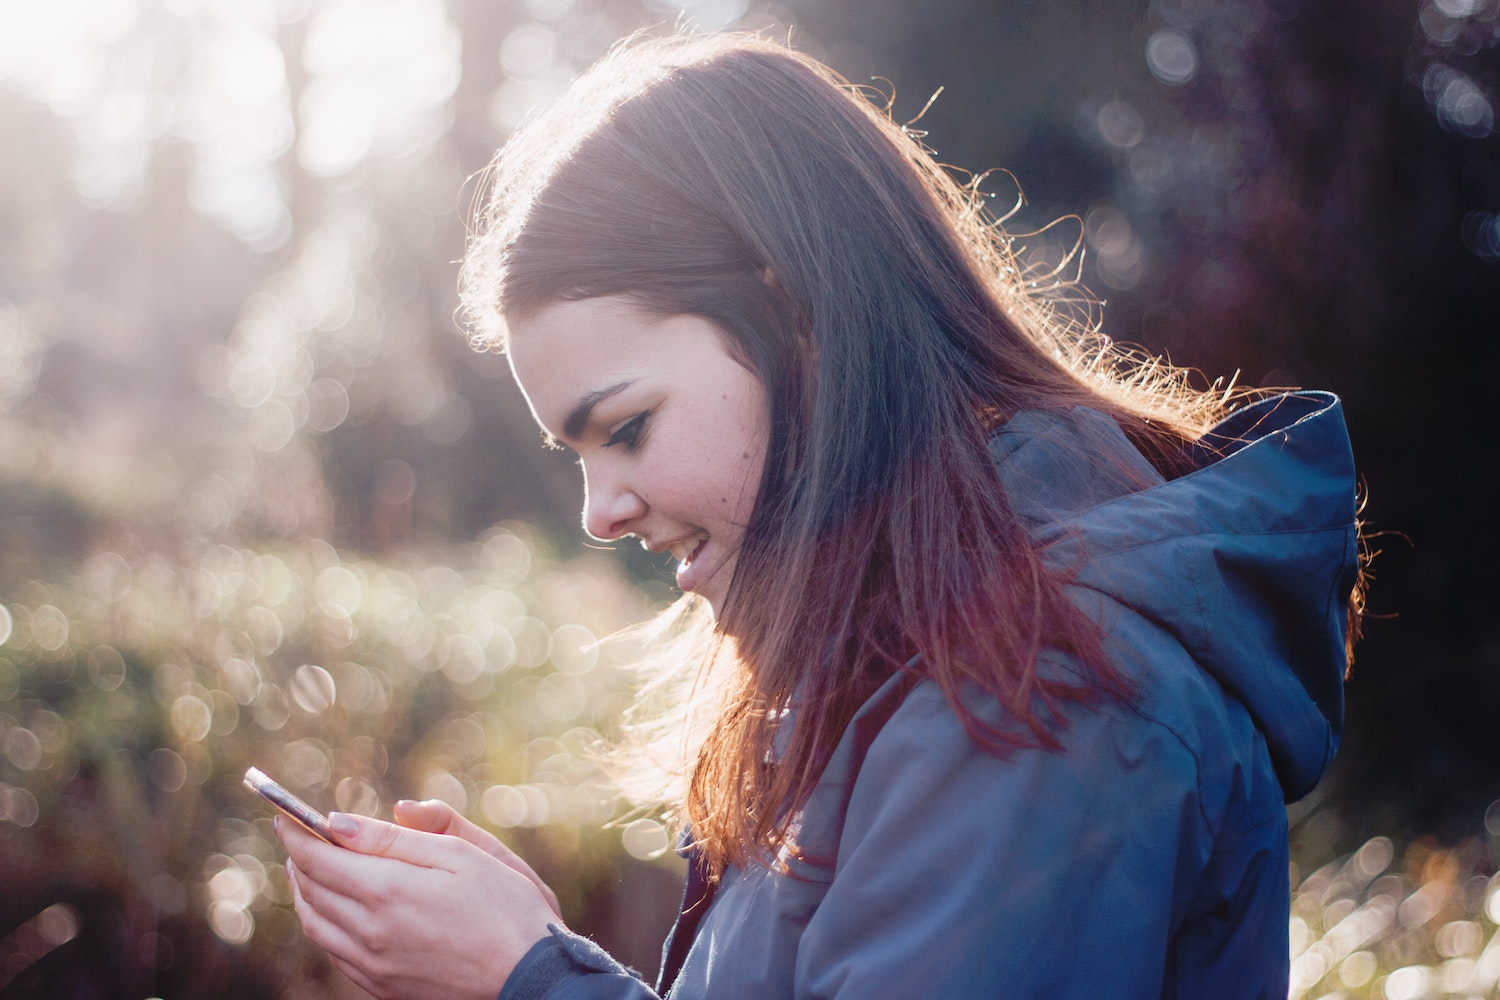 Healthy tech habits for teens